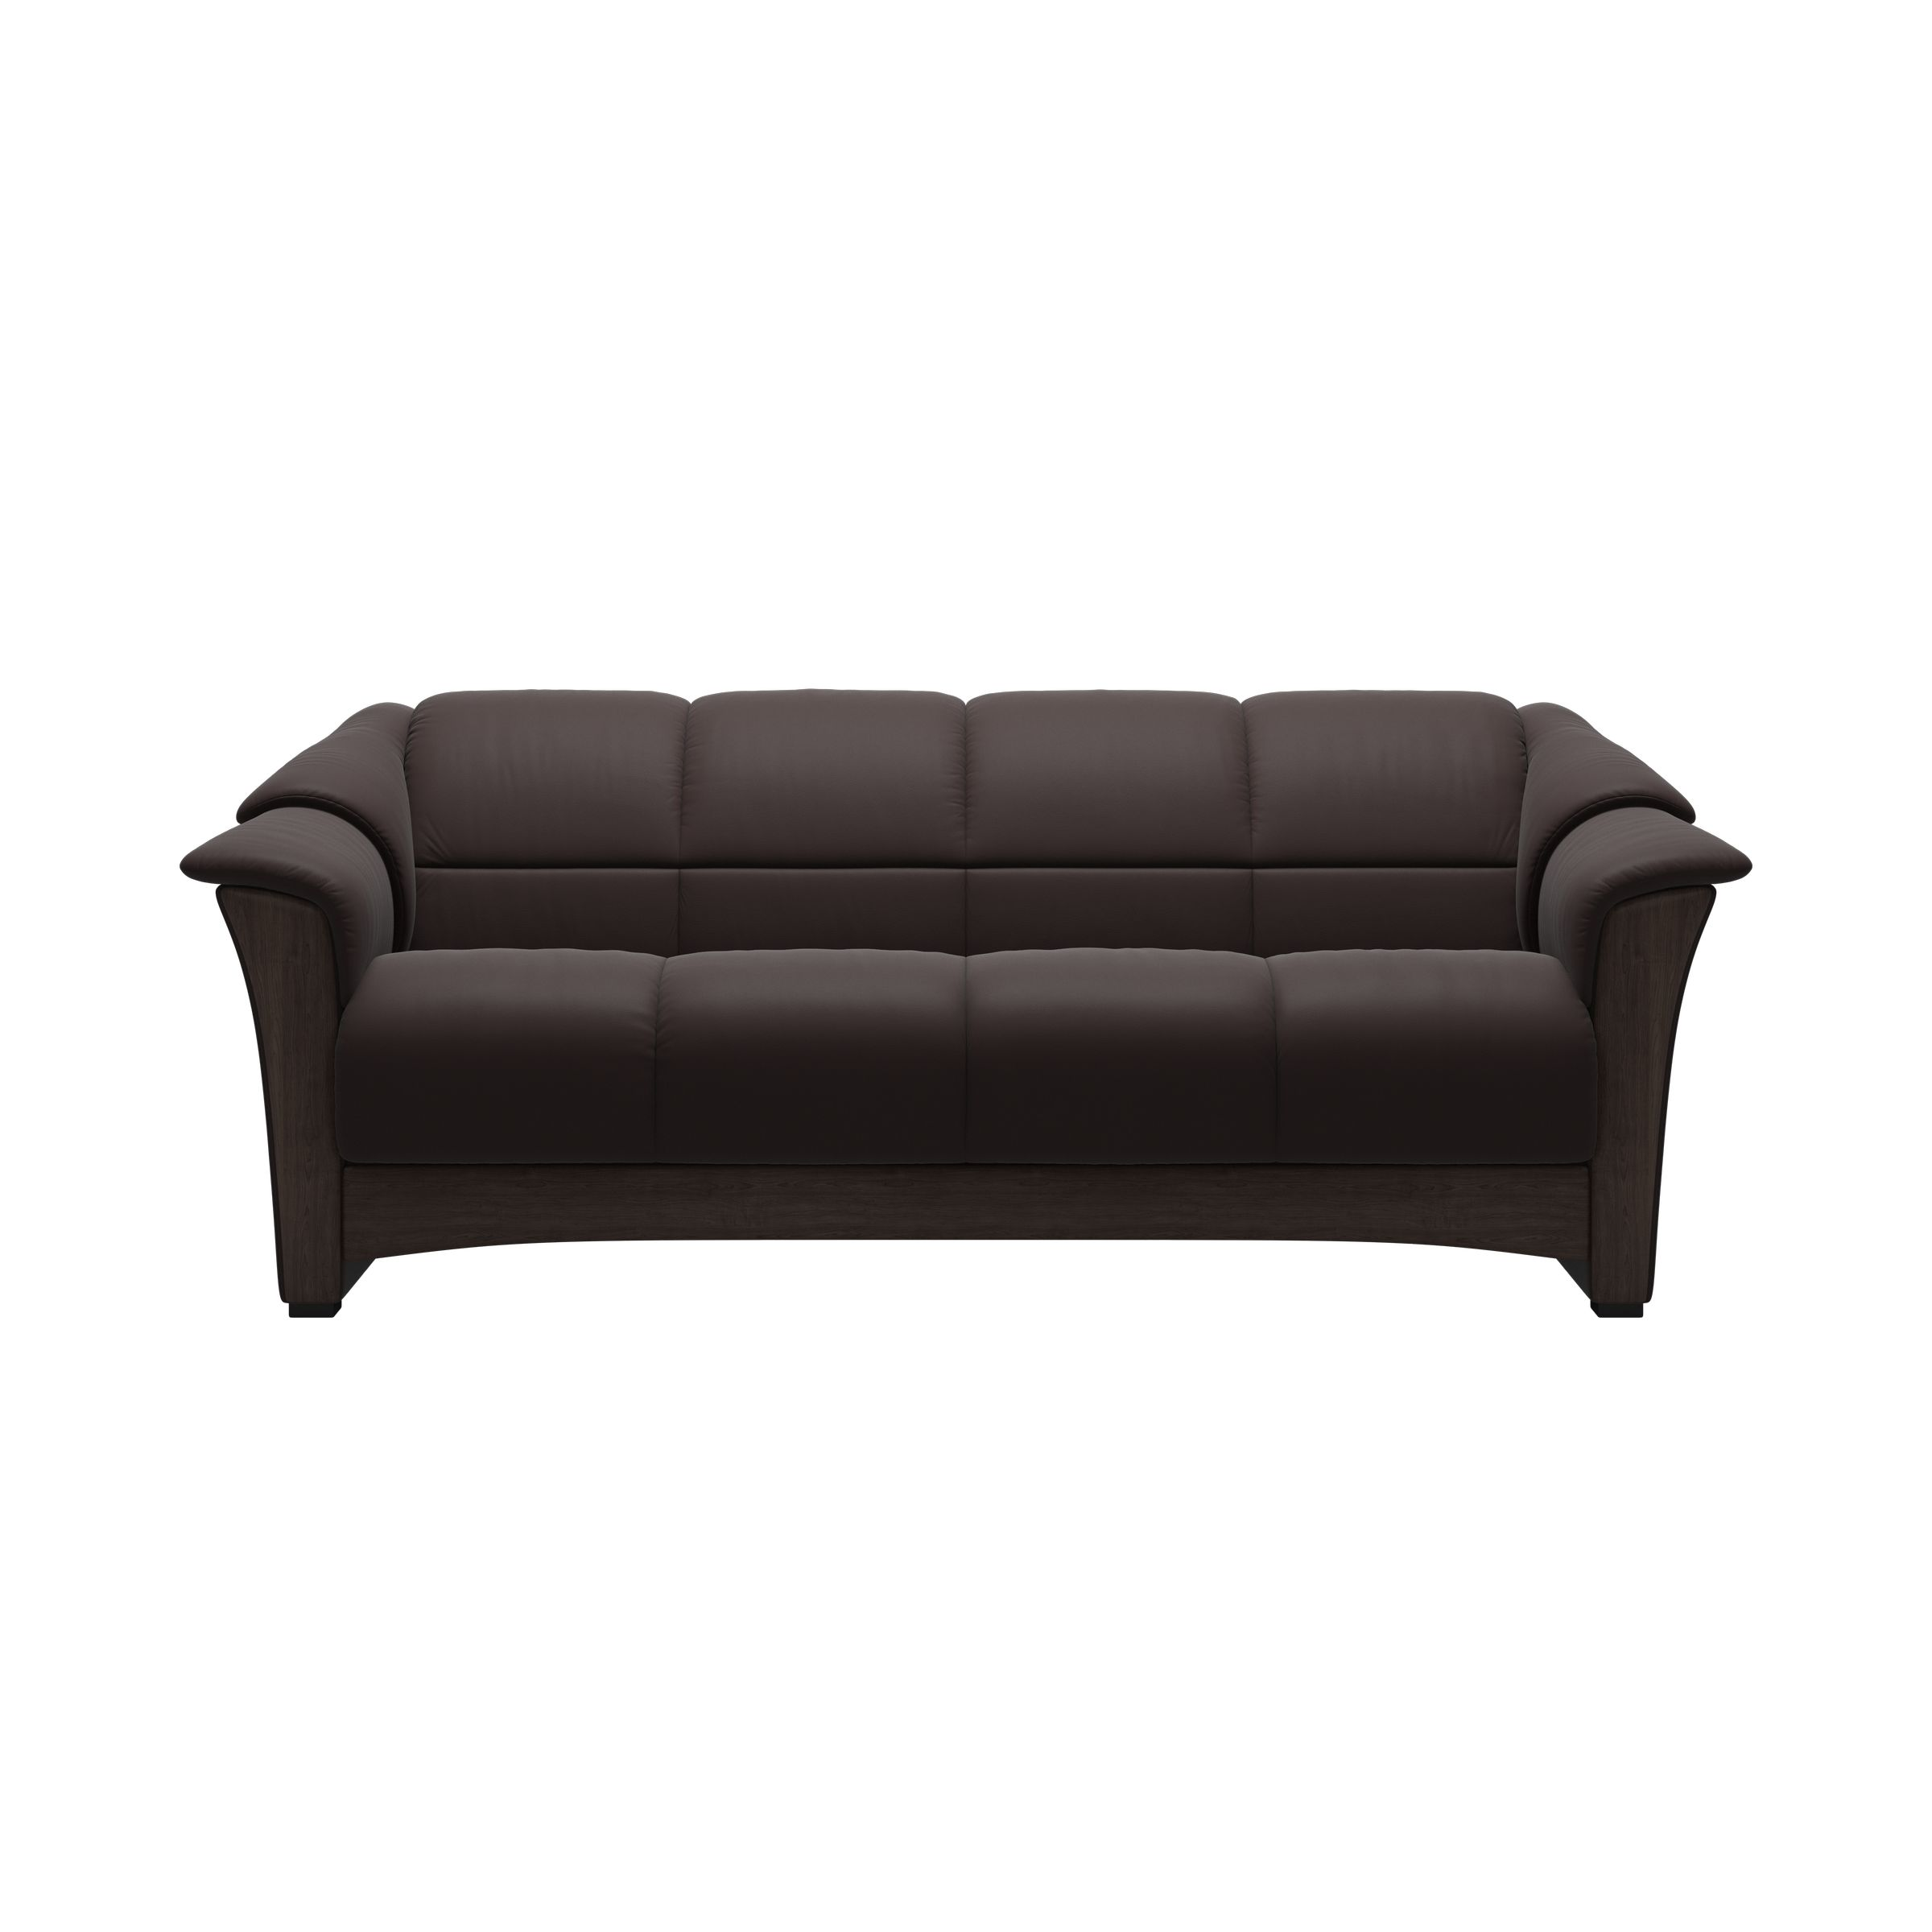 Dahlia 3 Seat Leather Sofa Ekornes Oslo Ekornes Collection Sofas